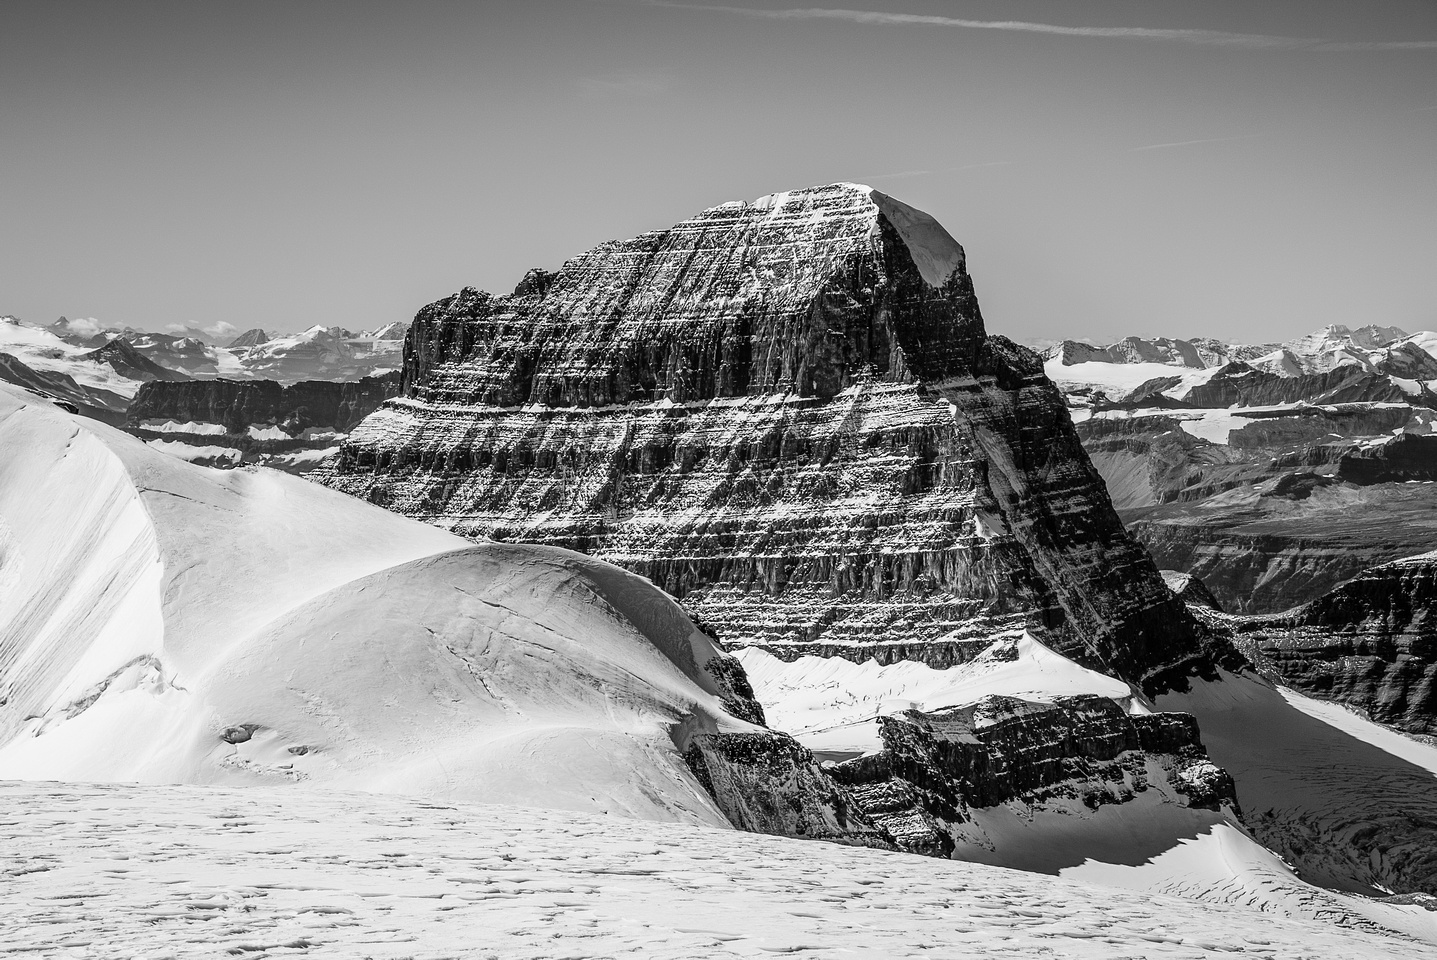 A great shot of the Northeast Ridge of Alberta. The North Face is in deep shadow.